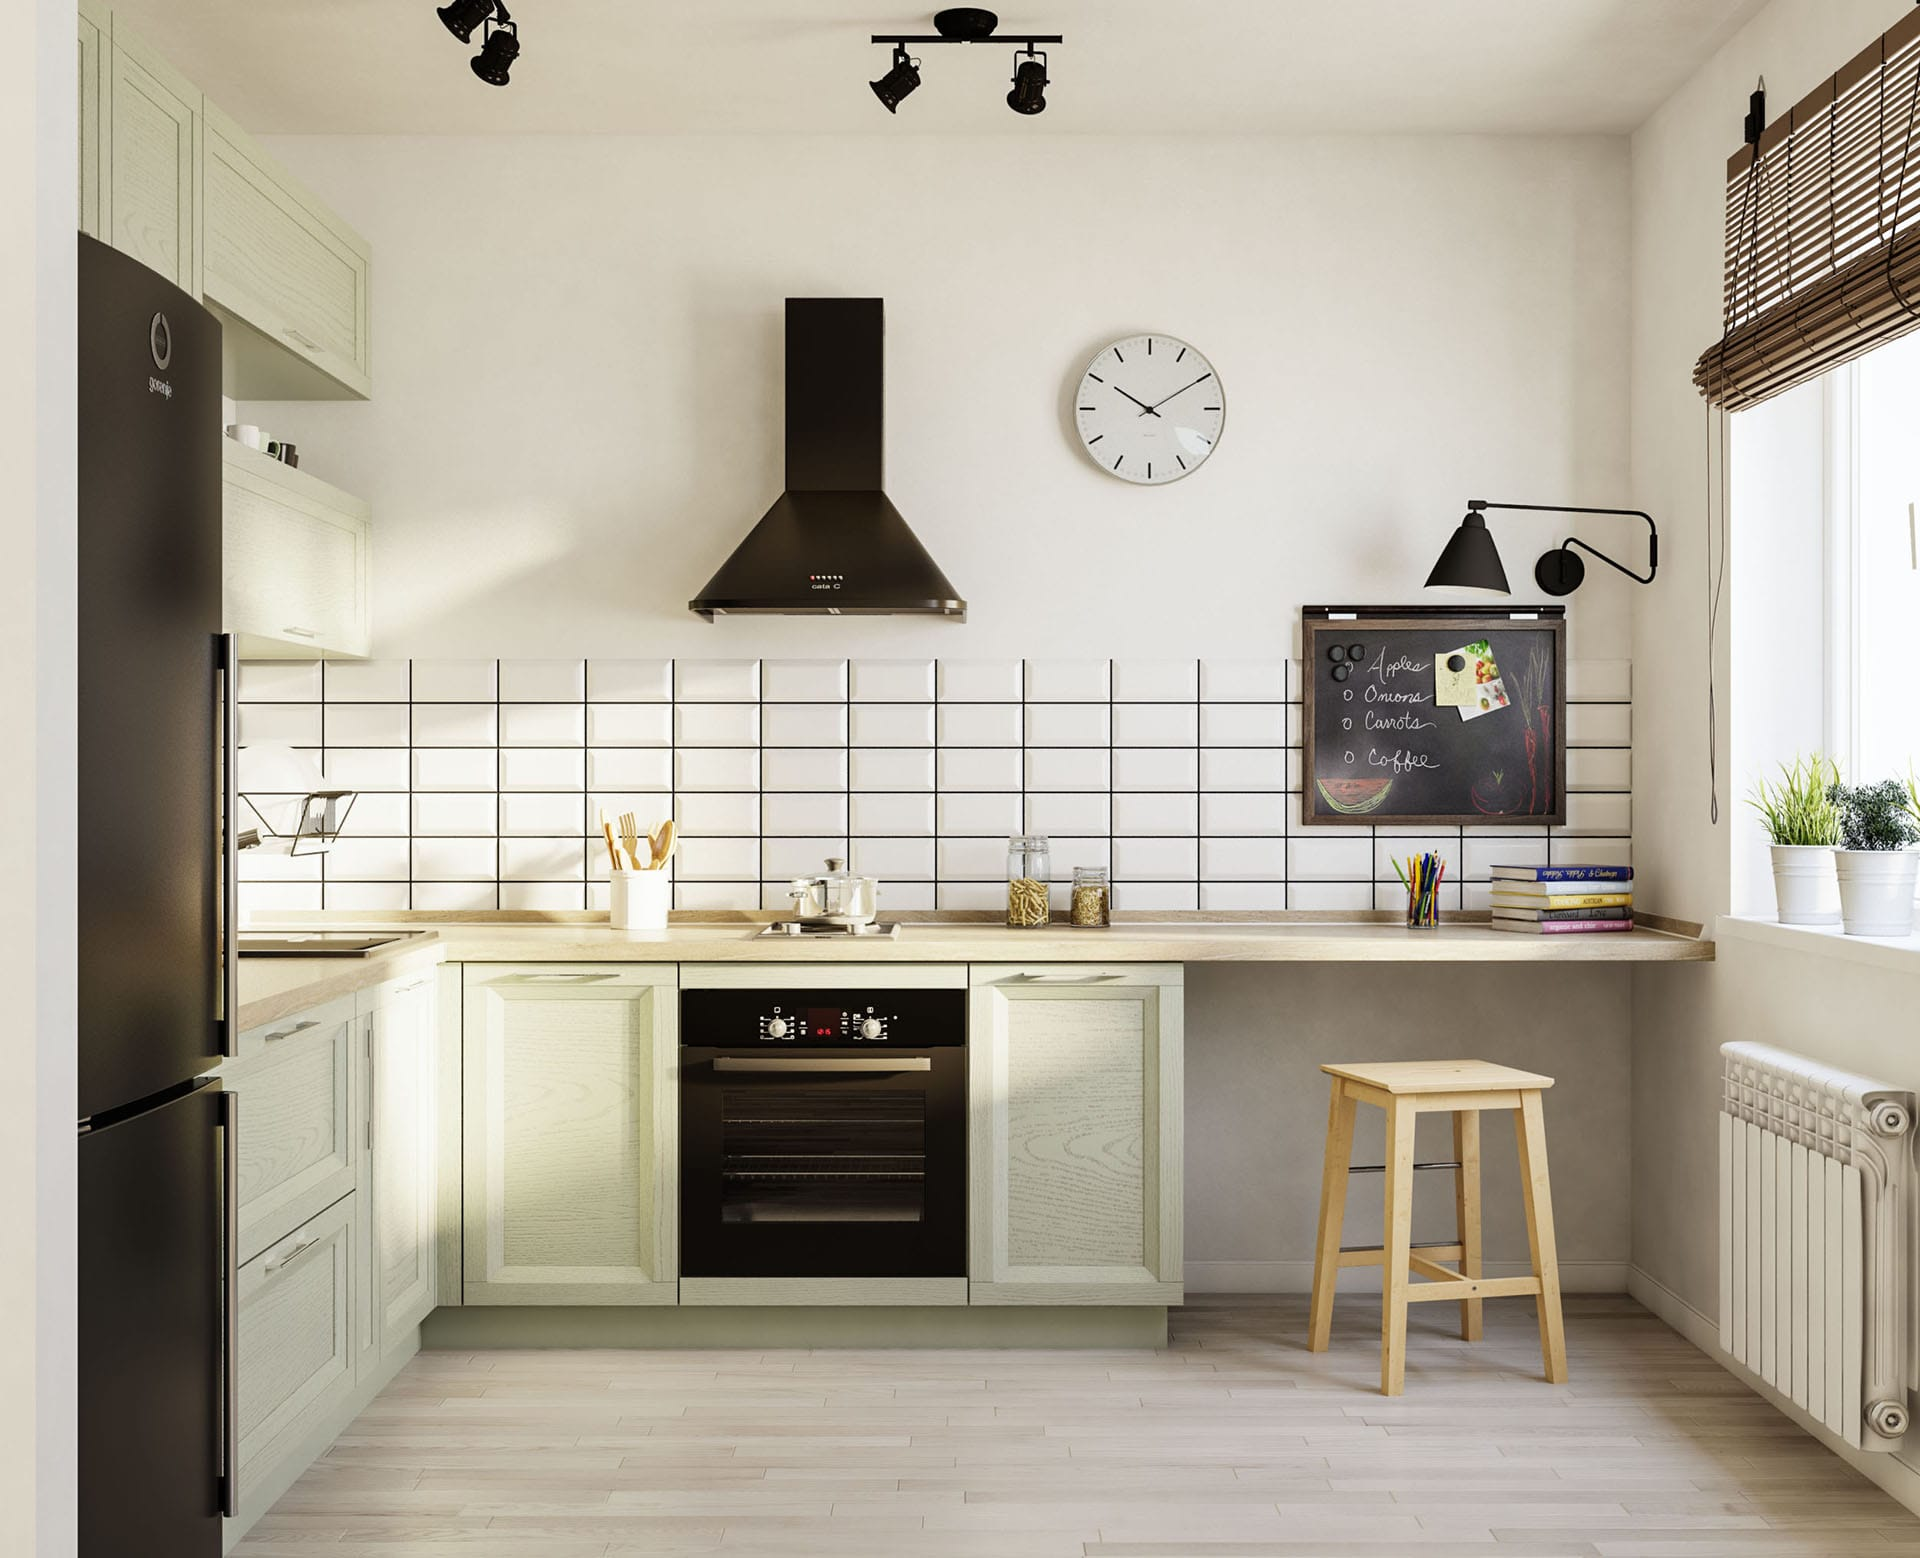 Simple concise black and white kitchen